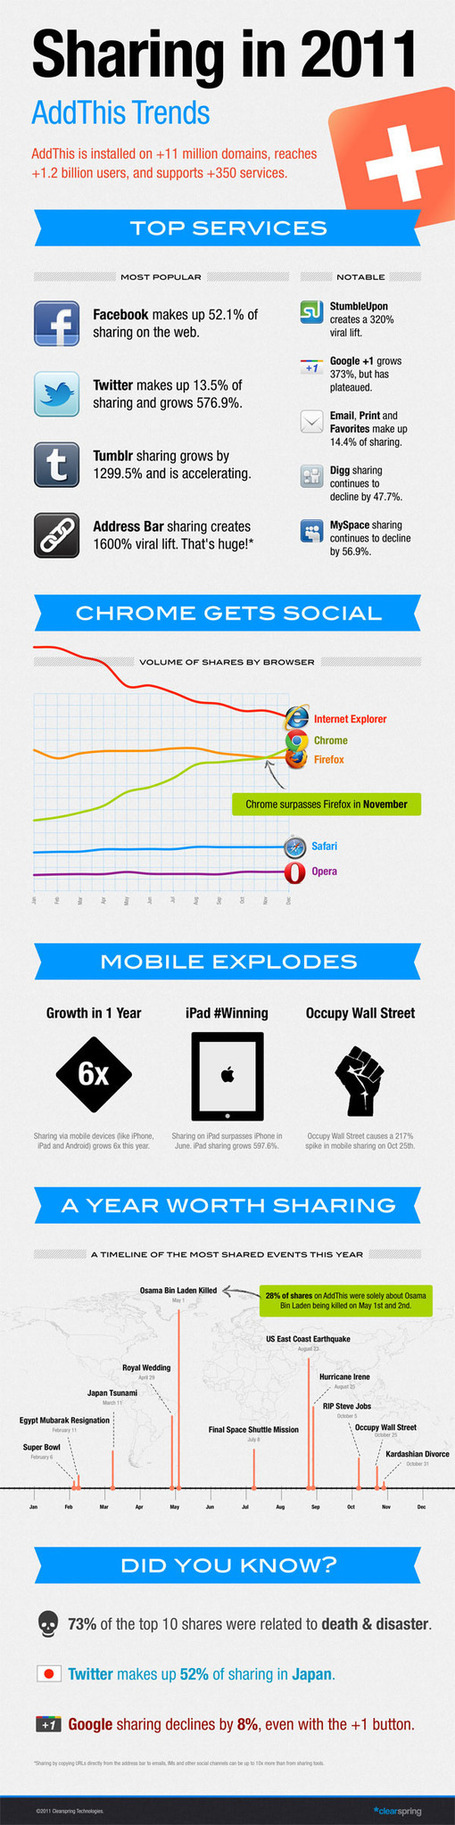 "Death and Disaster Top Sharing Trends in 2011 | ""#Google+, +1, Facebook, Twitter, Scoop, Foursquare, Empire Avenue, Klout and more"" 